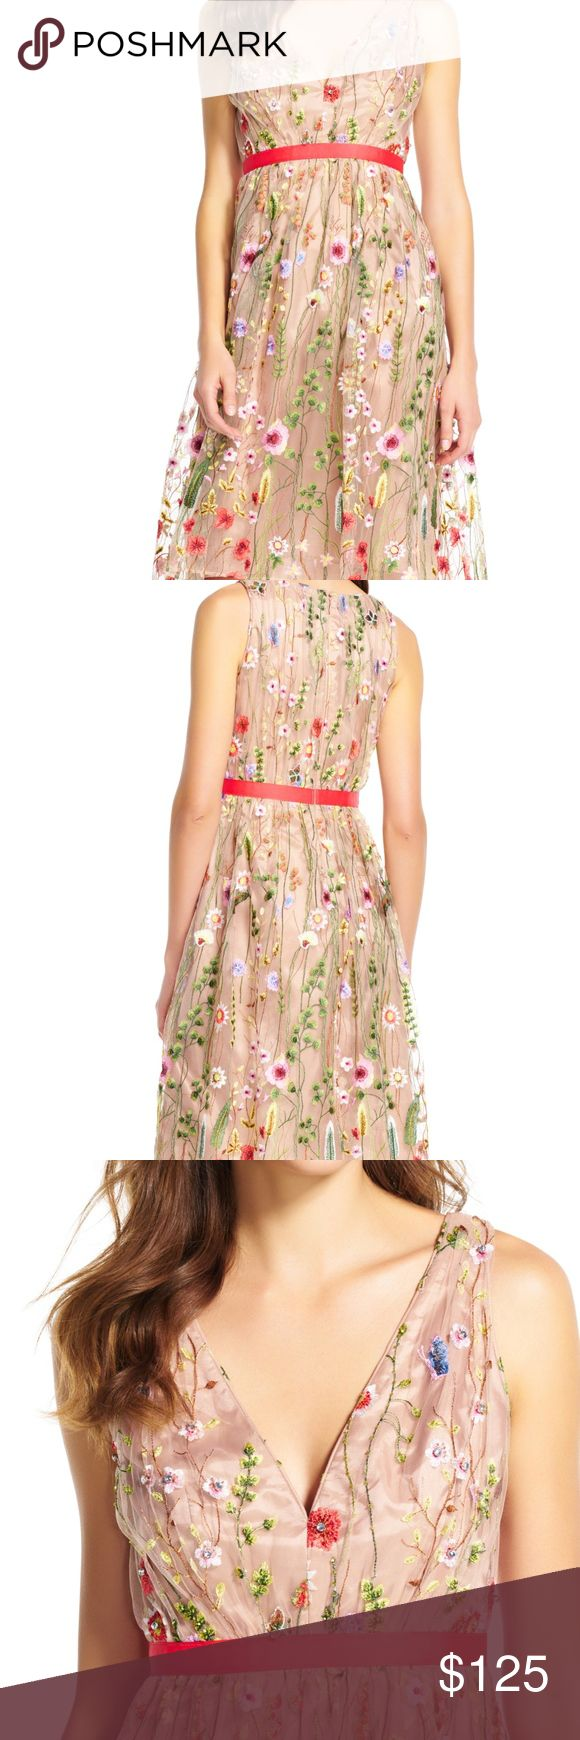 Adrianna Papell Boho Embroidered Fit Flare Dress Bright Fun floral embroidery has this dress hitting every trend this season.  Featuing a v-neckline; figure-enhancing empire waist; and a sleeveless bodice;  this romantic party dress will perfectly tend to your night out. Can be worn for special occasion formal like a wedding, can be worn and on trend currently with Doc Martens and a Moto leather jacket  Crafted from gauzy tulle; this style is simply stunning.  This party dress is complete…